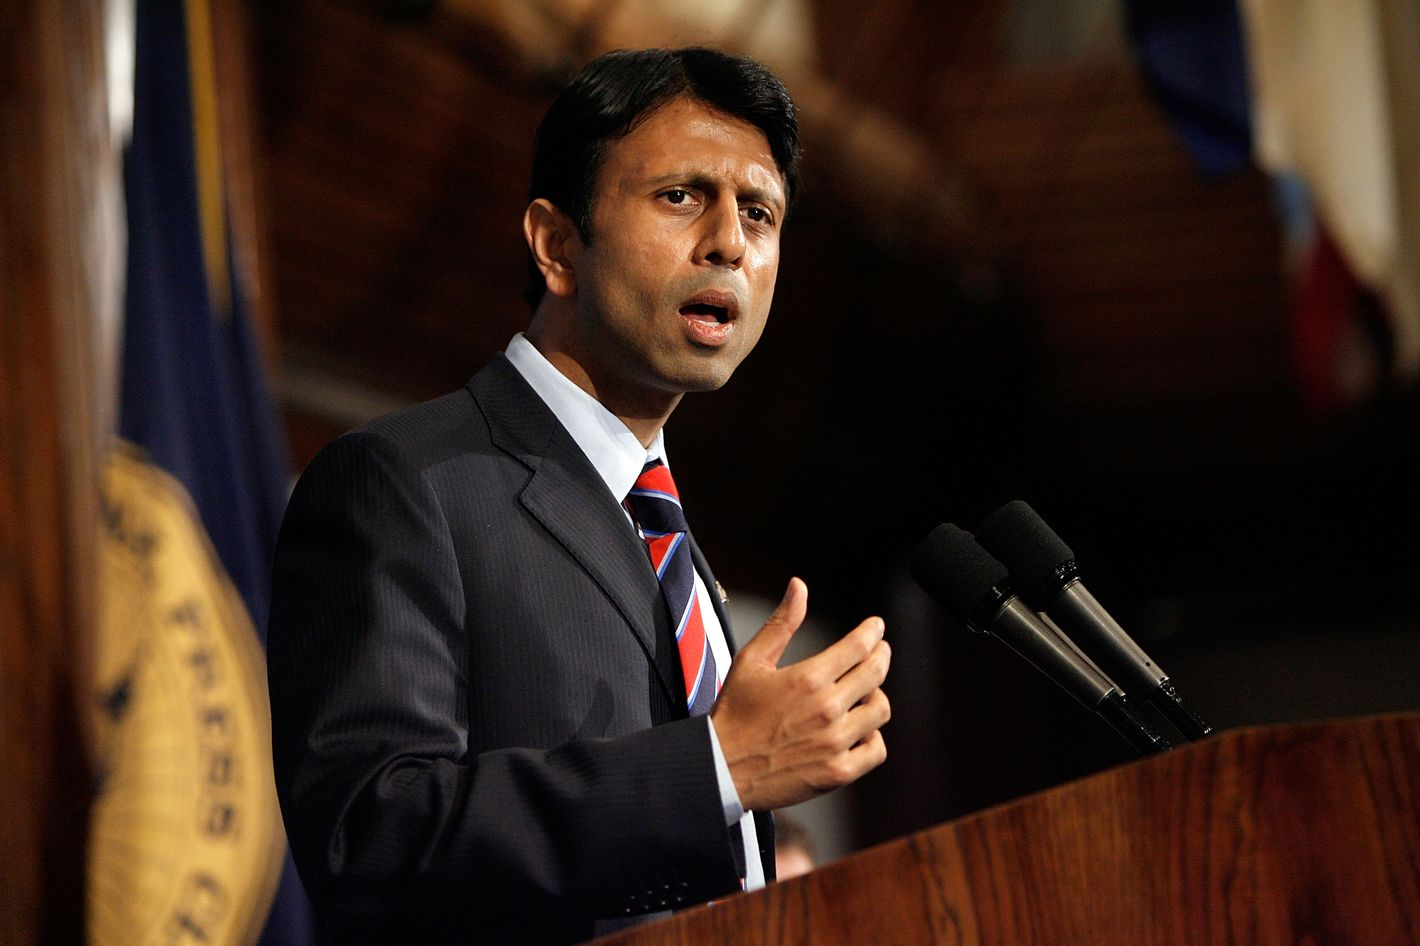 WASHINGTON - MAY 02:  Louisana Governor Bobby Jindal addresses the National Press Club May 2, 2008 in Washington, DC. Political observers have been speculating about Jindal, the first Indian-American elected governor of Louisana, being a possible vice presidential running mate for GOP candidate Sen. John McCain (R-AZ). Jindal lead McCain on a tour of about a dozen blocks of the Lower Ninth Ward during a campaign stop in New Orleans last week.  (Photo by Chip Somodevilla/Getty Images)